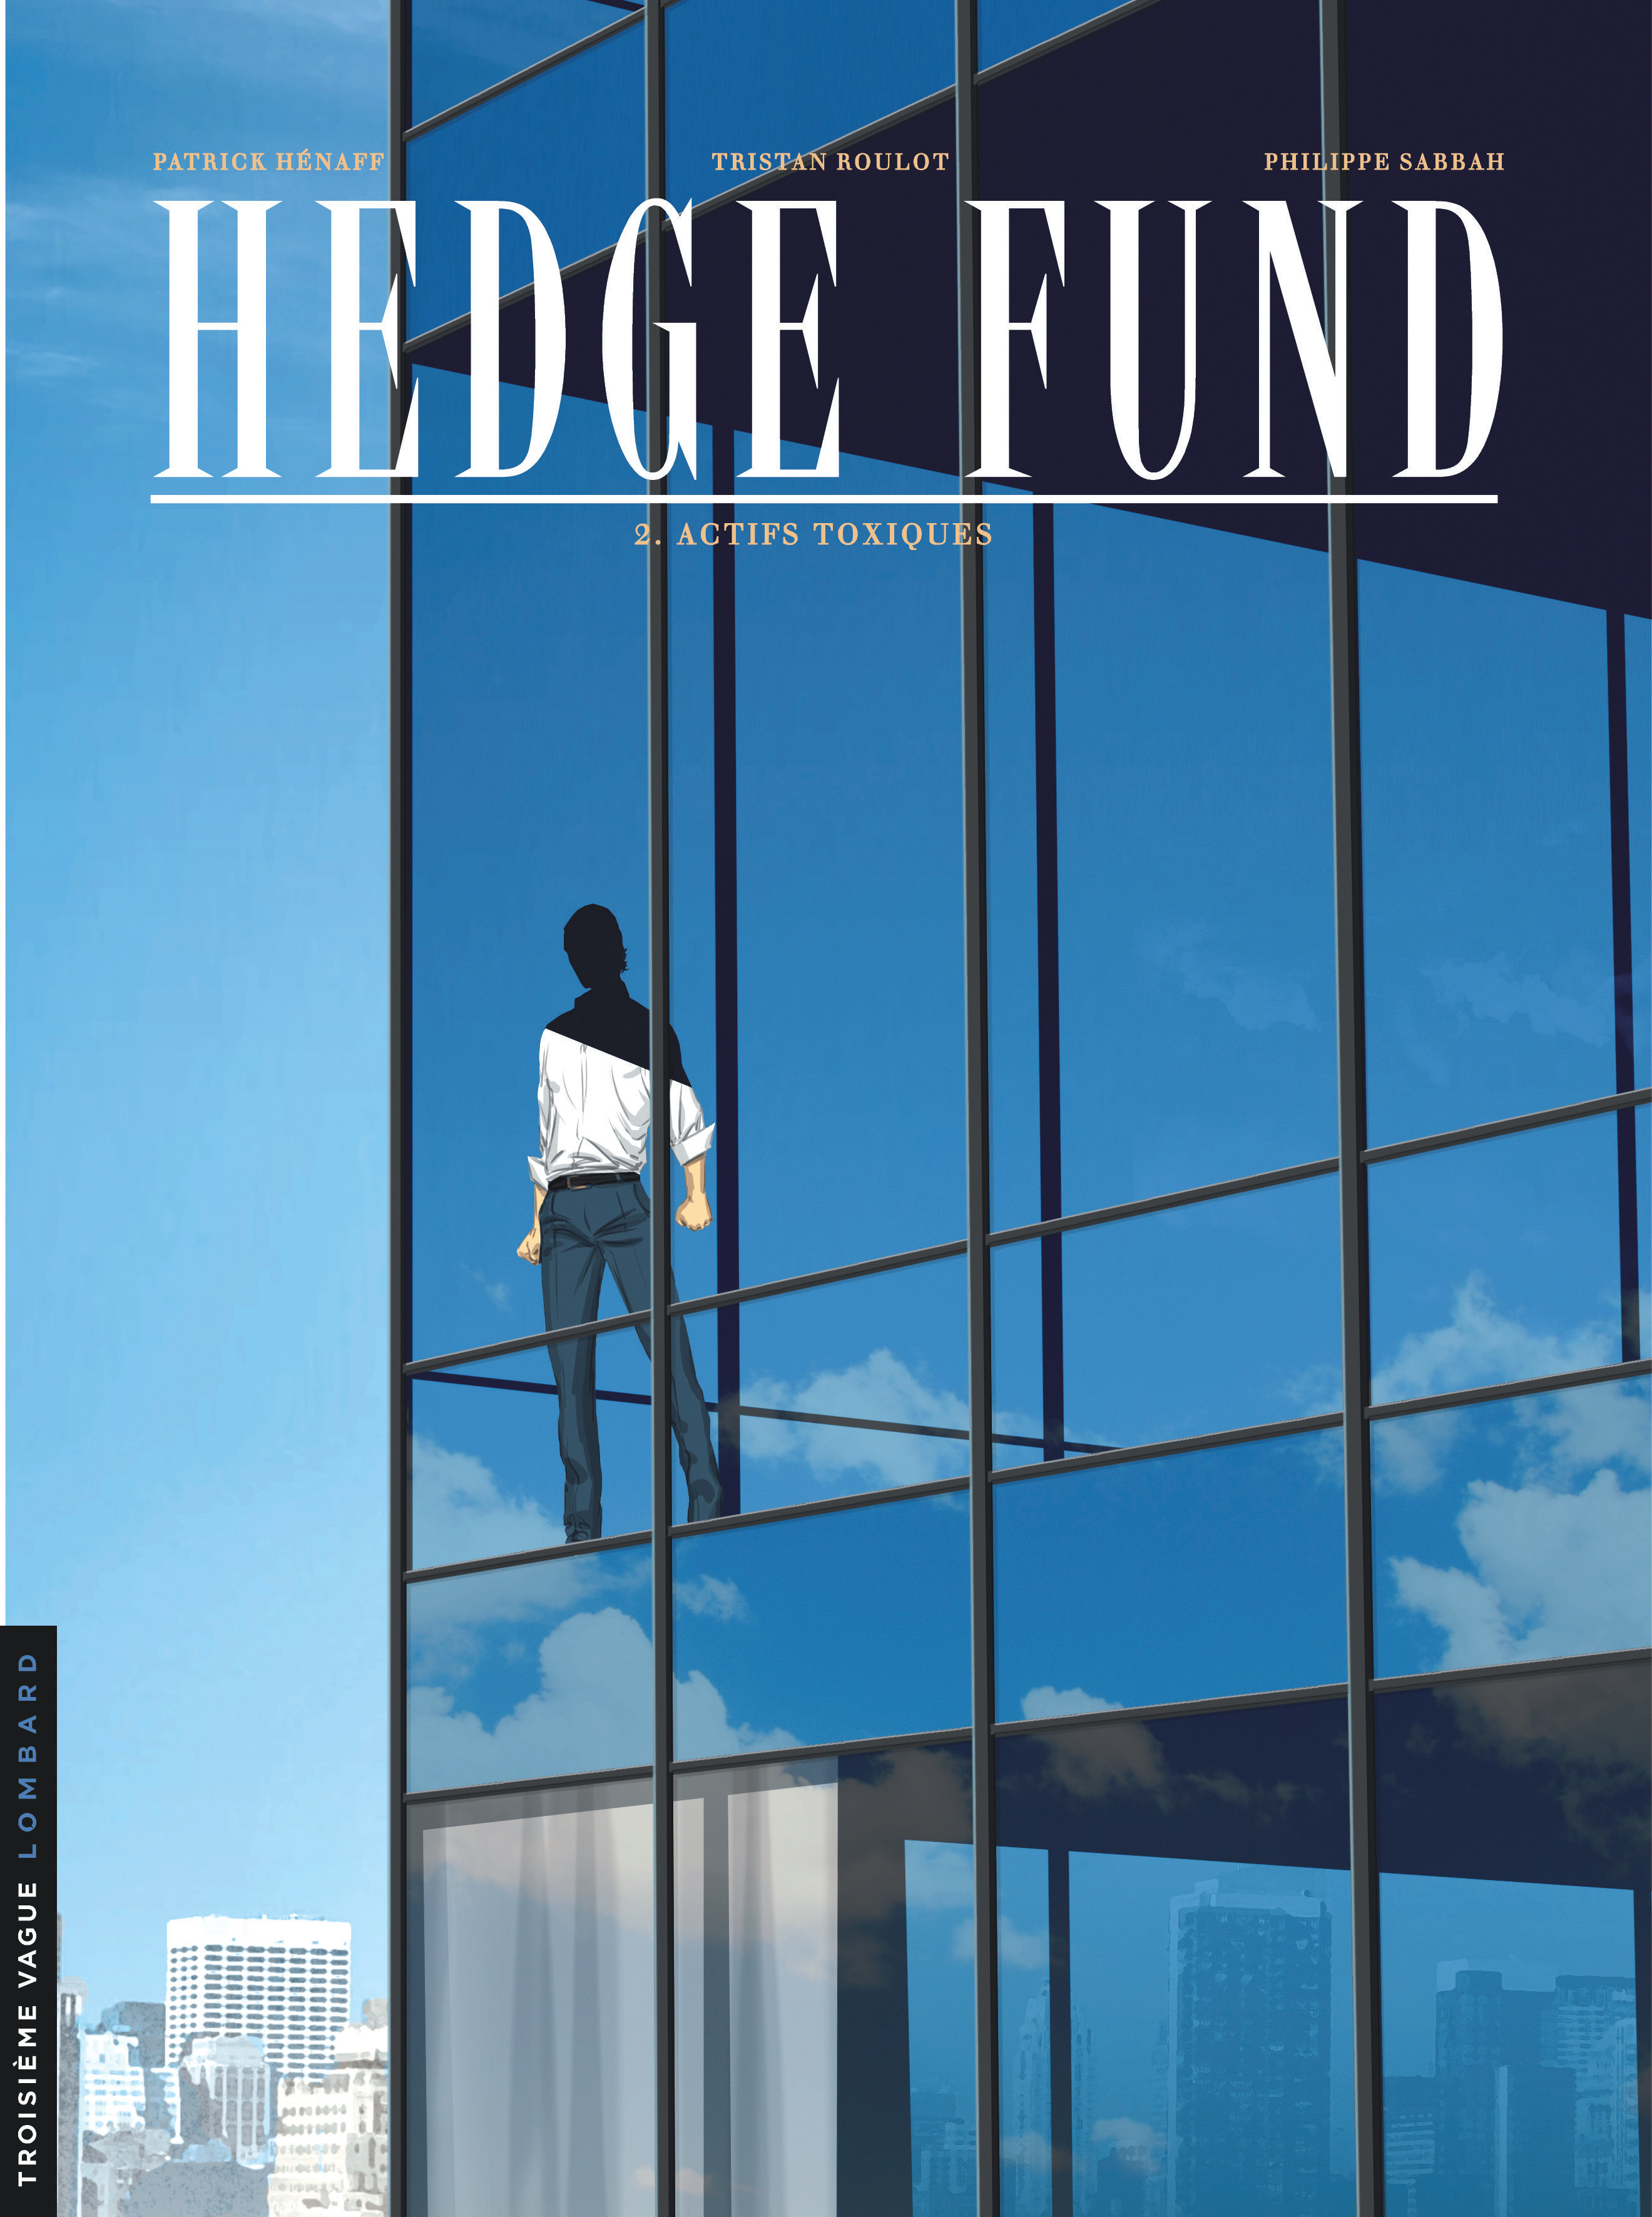 Hedge Fund 2 - Actifs toxiques